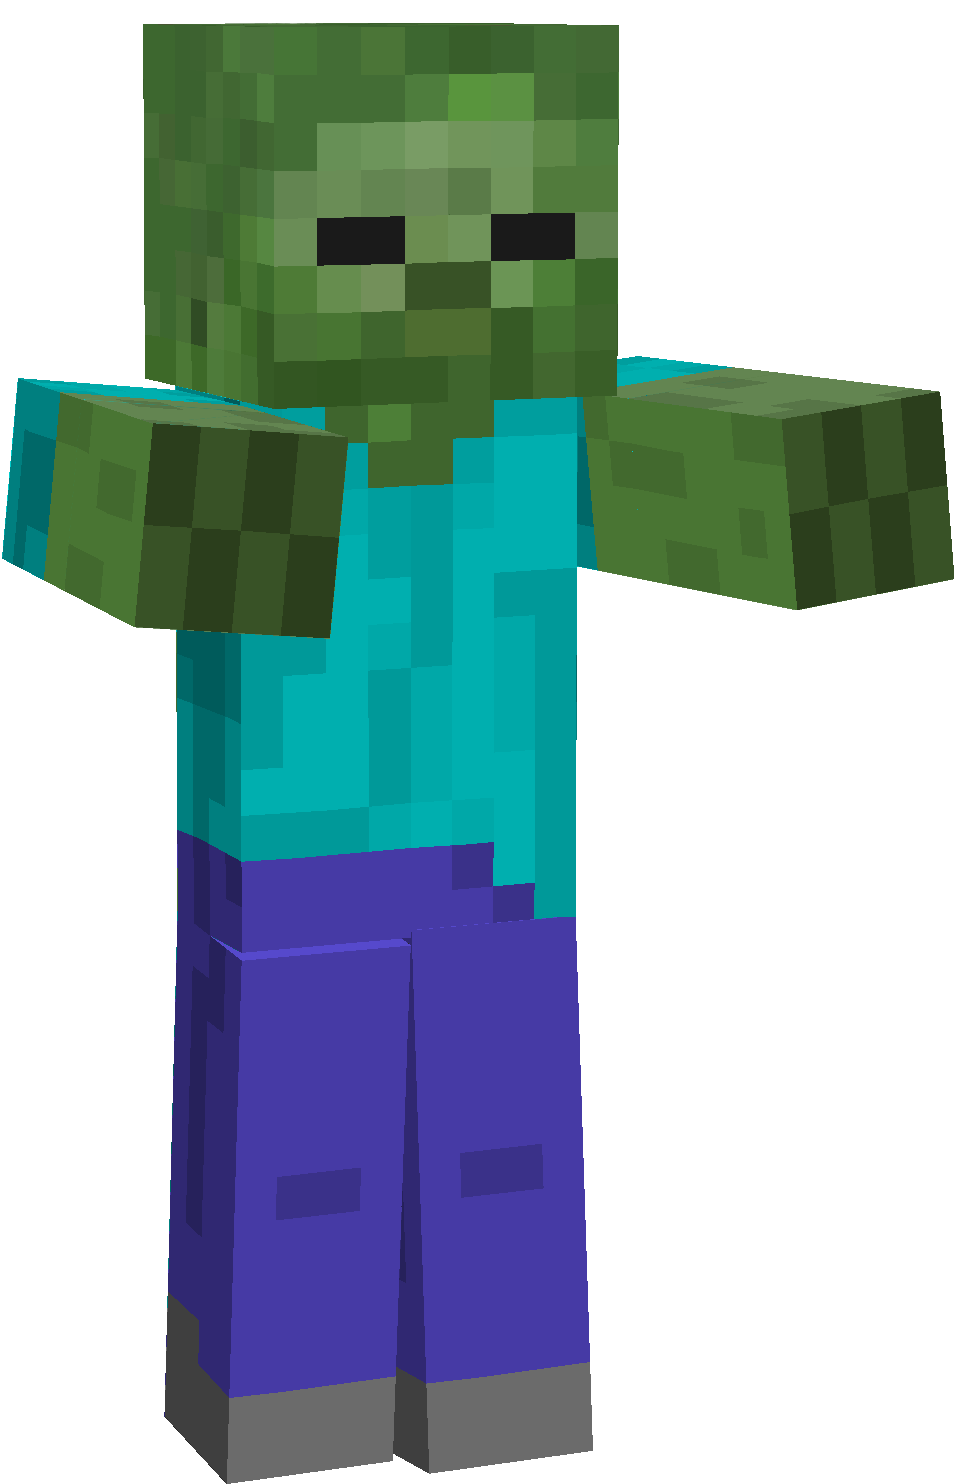 Pin By Diana Justice On Minecraft Party Pinterest Minecraft Mobs - Zombey skin fur minecraft pe